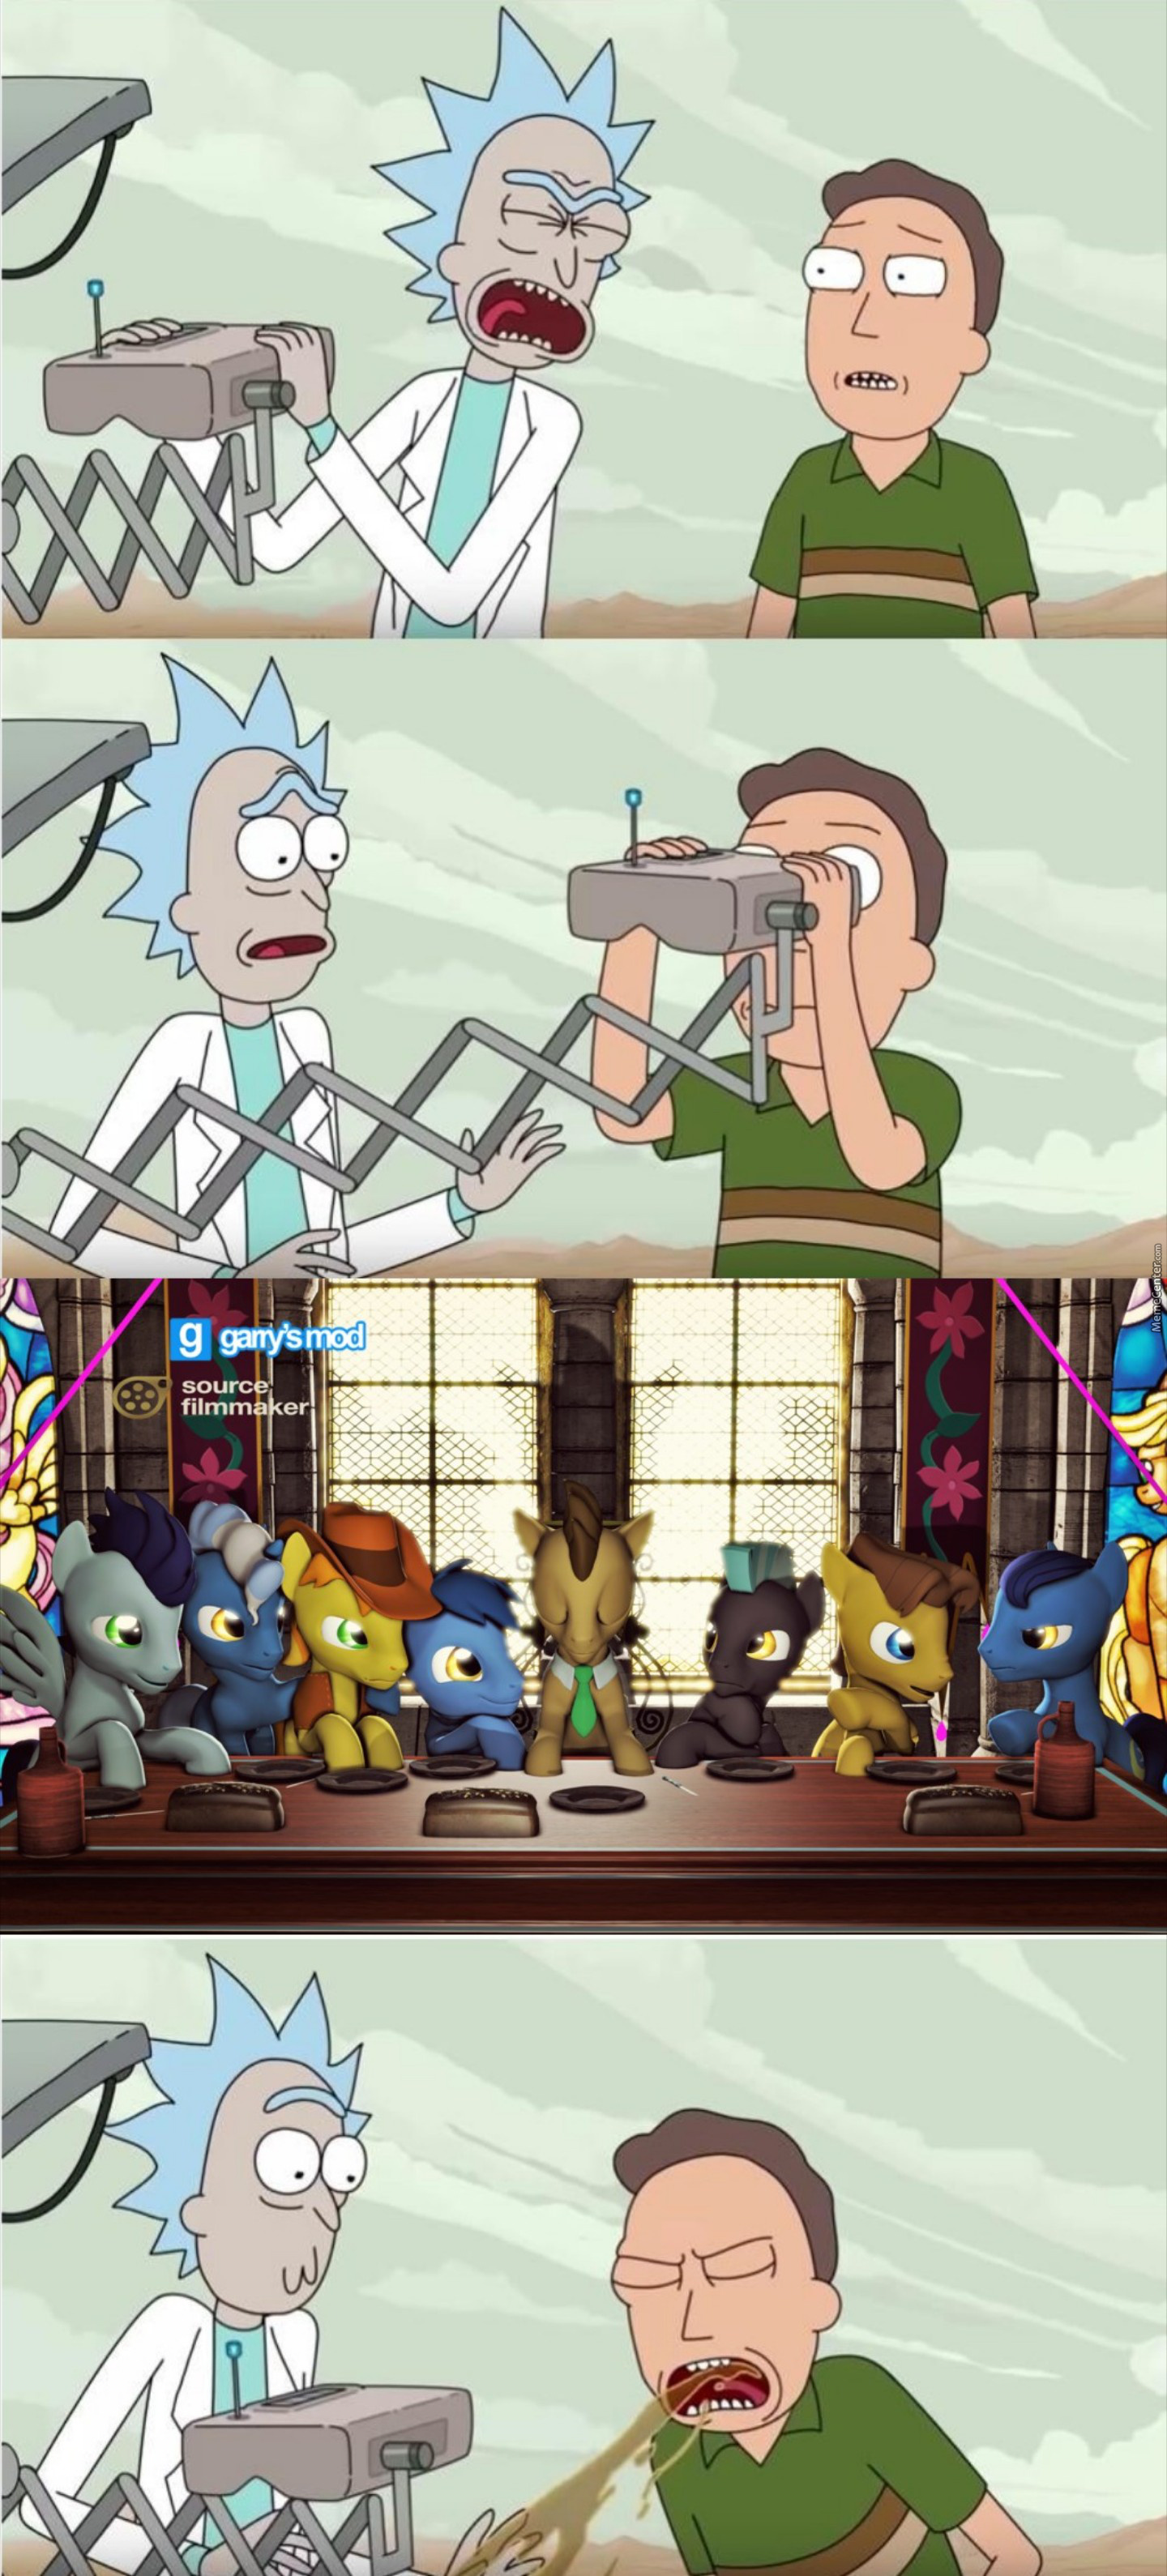 Valve Employe: Sir! They've Taken Over The Sfm Community! Gaben: Let Them Be. *says While Watching Mlp*